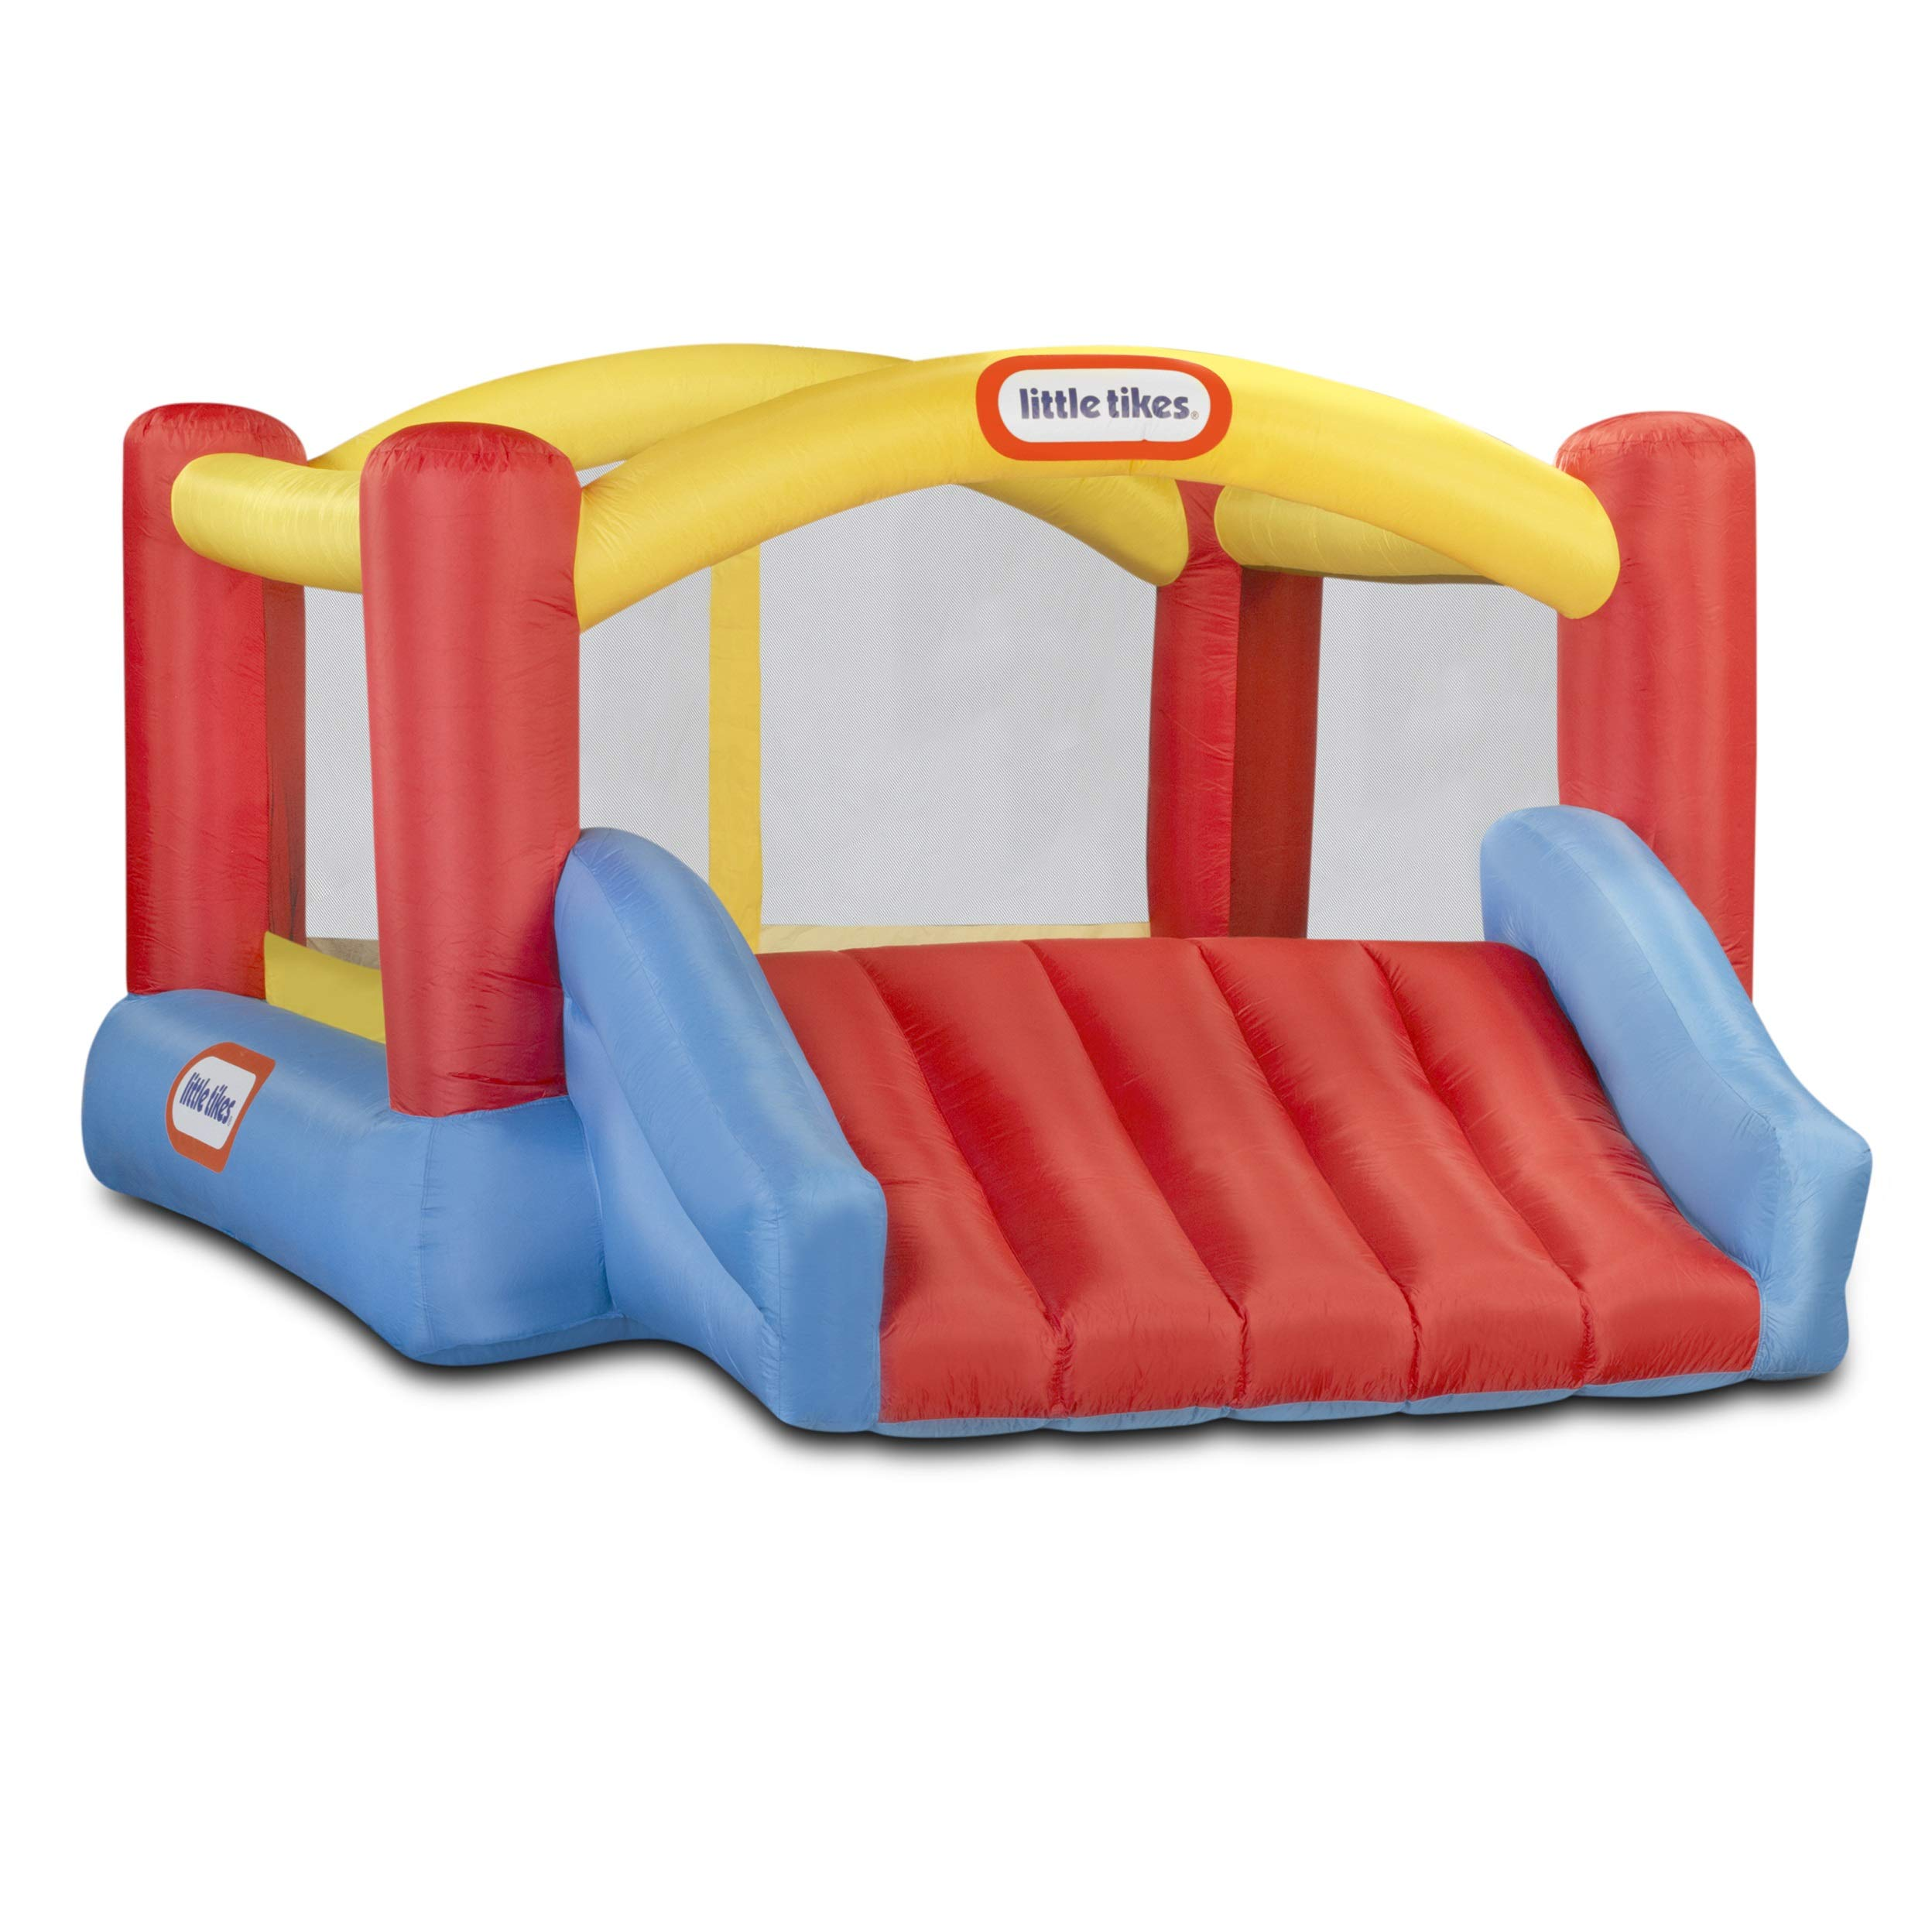 Little Tikes Inflatable Jump 'n Slide Bounce House w/heavy duty blower by Little Tikes (Image #1)